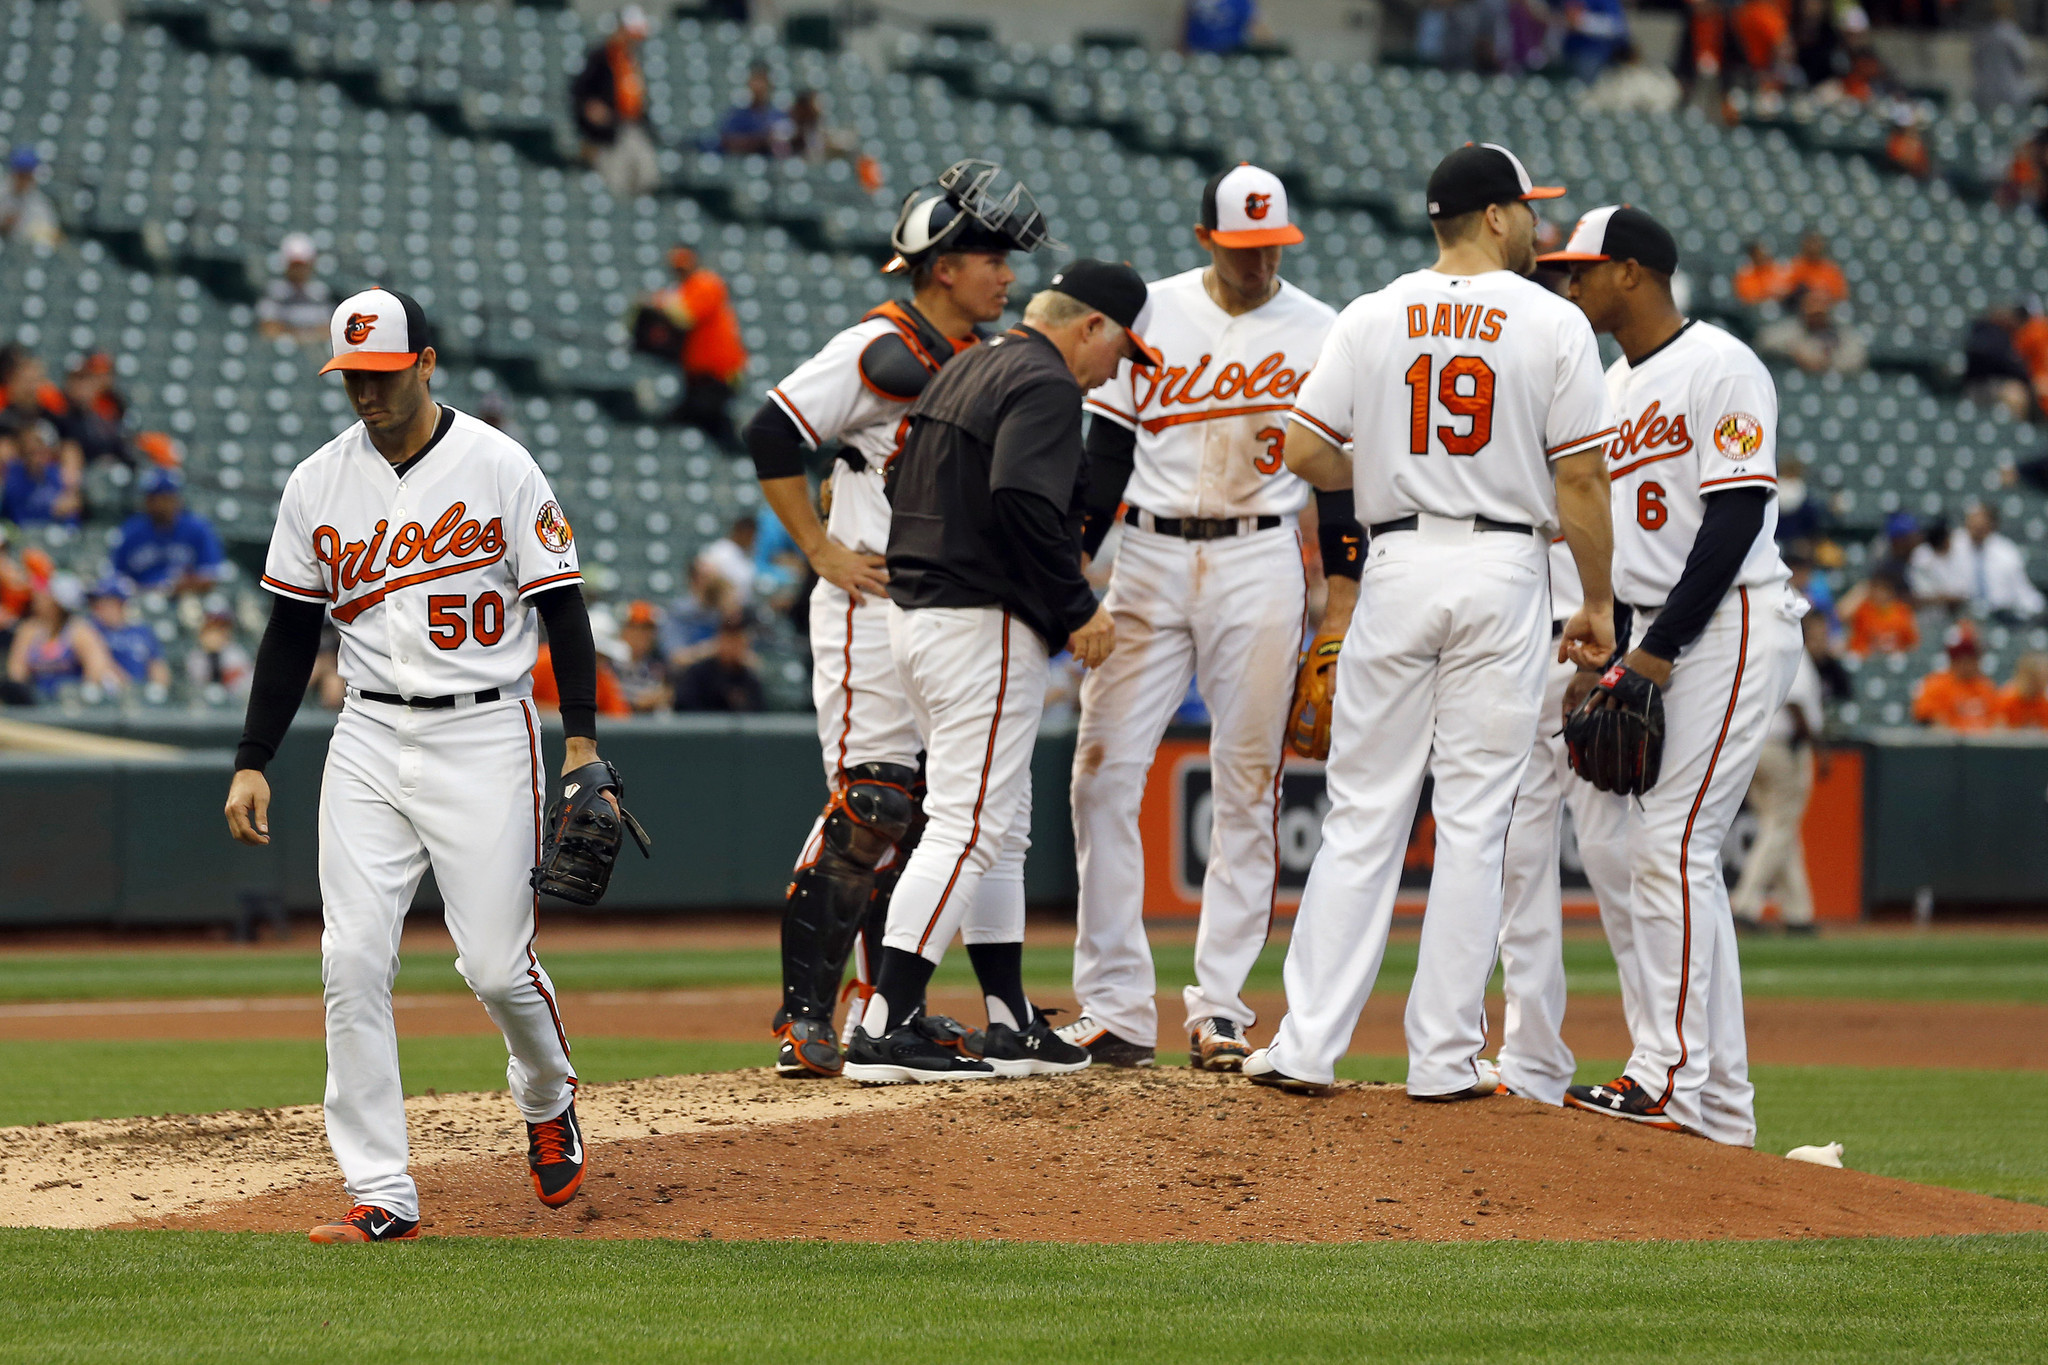 Bal-with-chris-davis-locked-up-orioles-still-cognizant-of-pitching-staff-needs-20160121